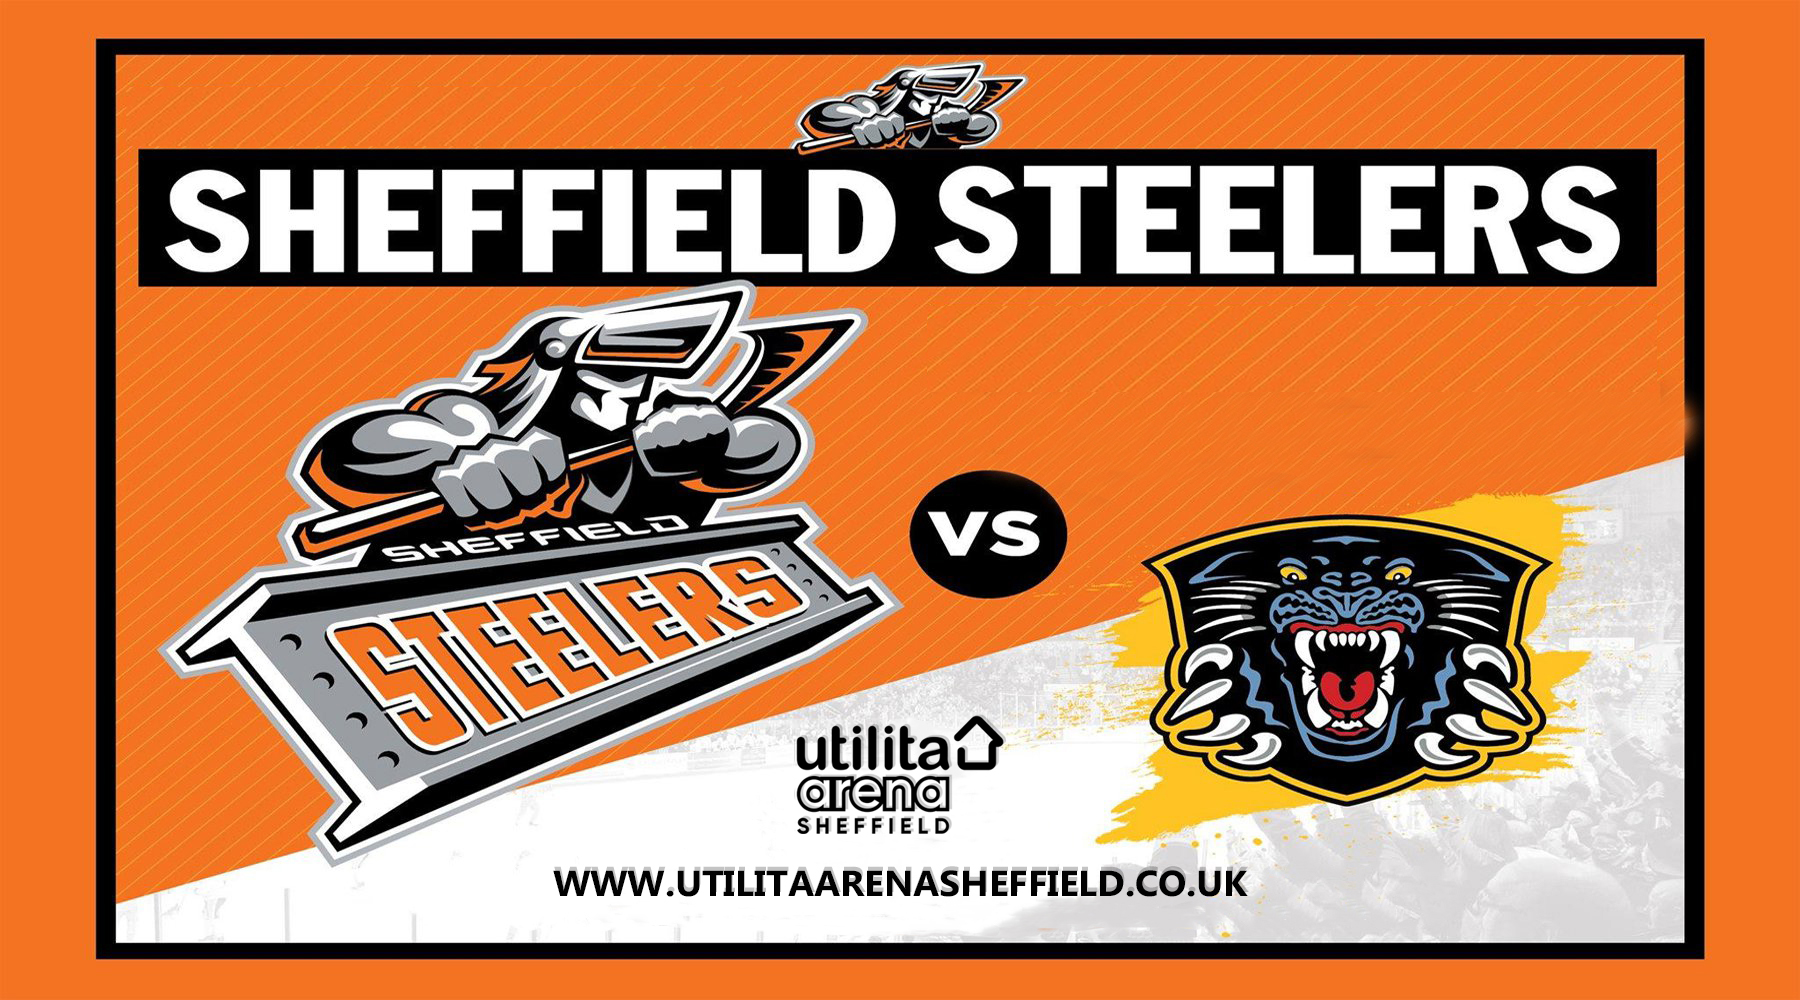 Steelers%20V%20Panthers%201800x1000.jpg